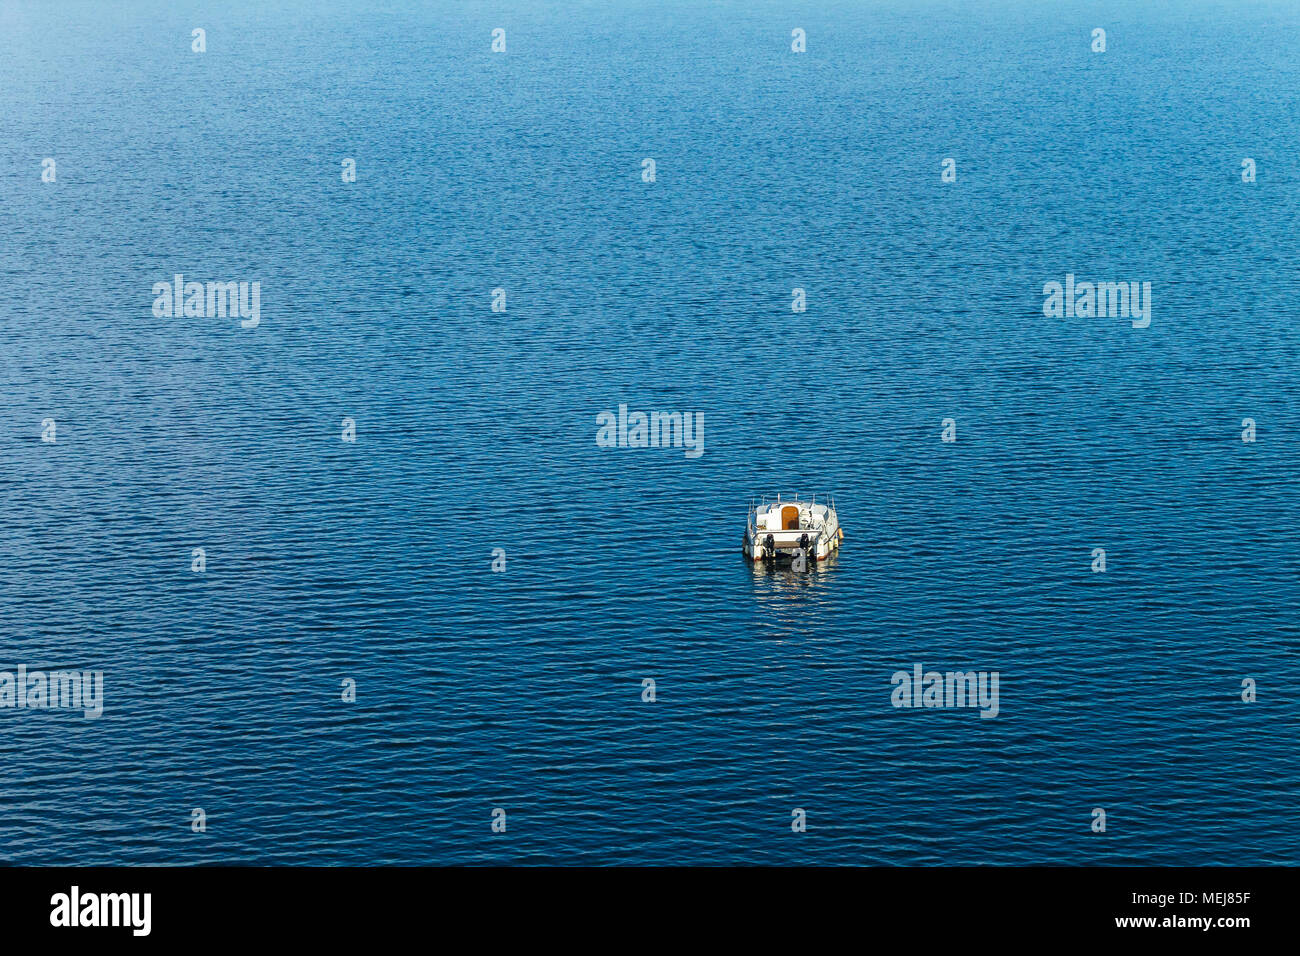 Boat alone on dam waters birds-eye flying photo - Stock Image